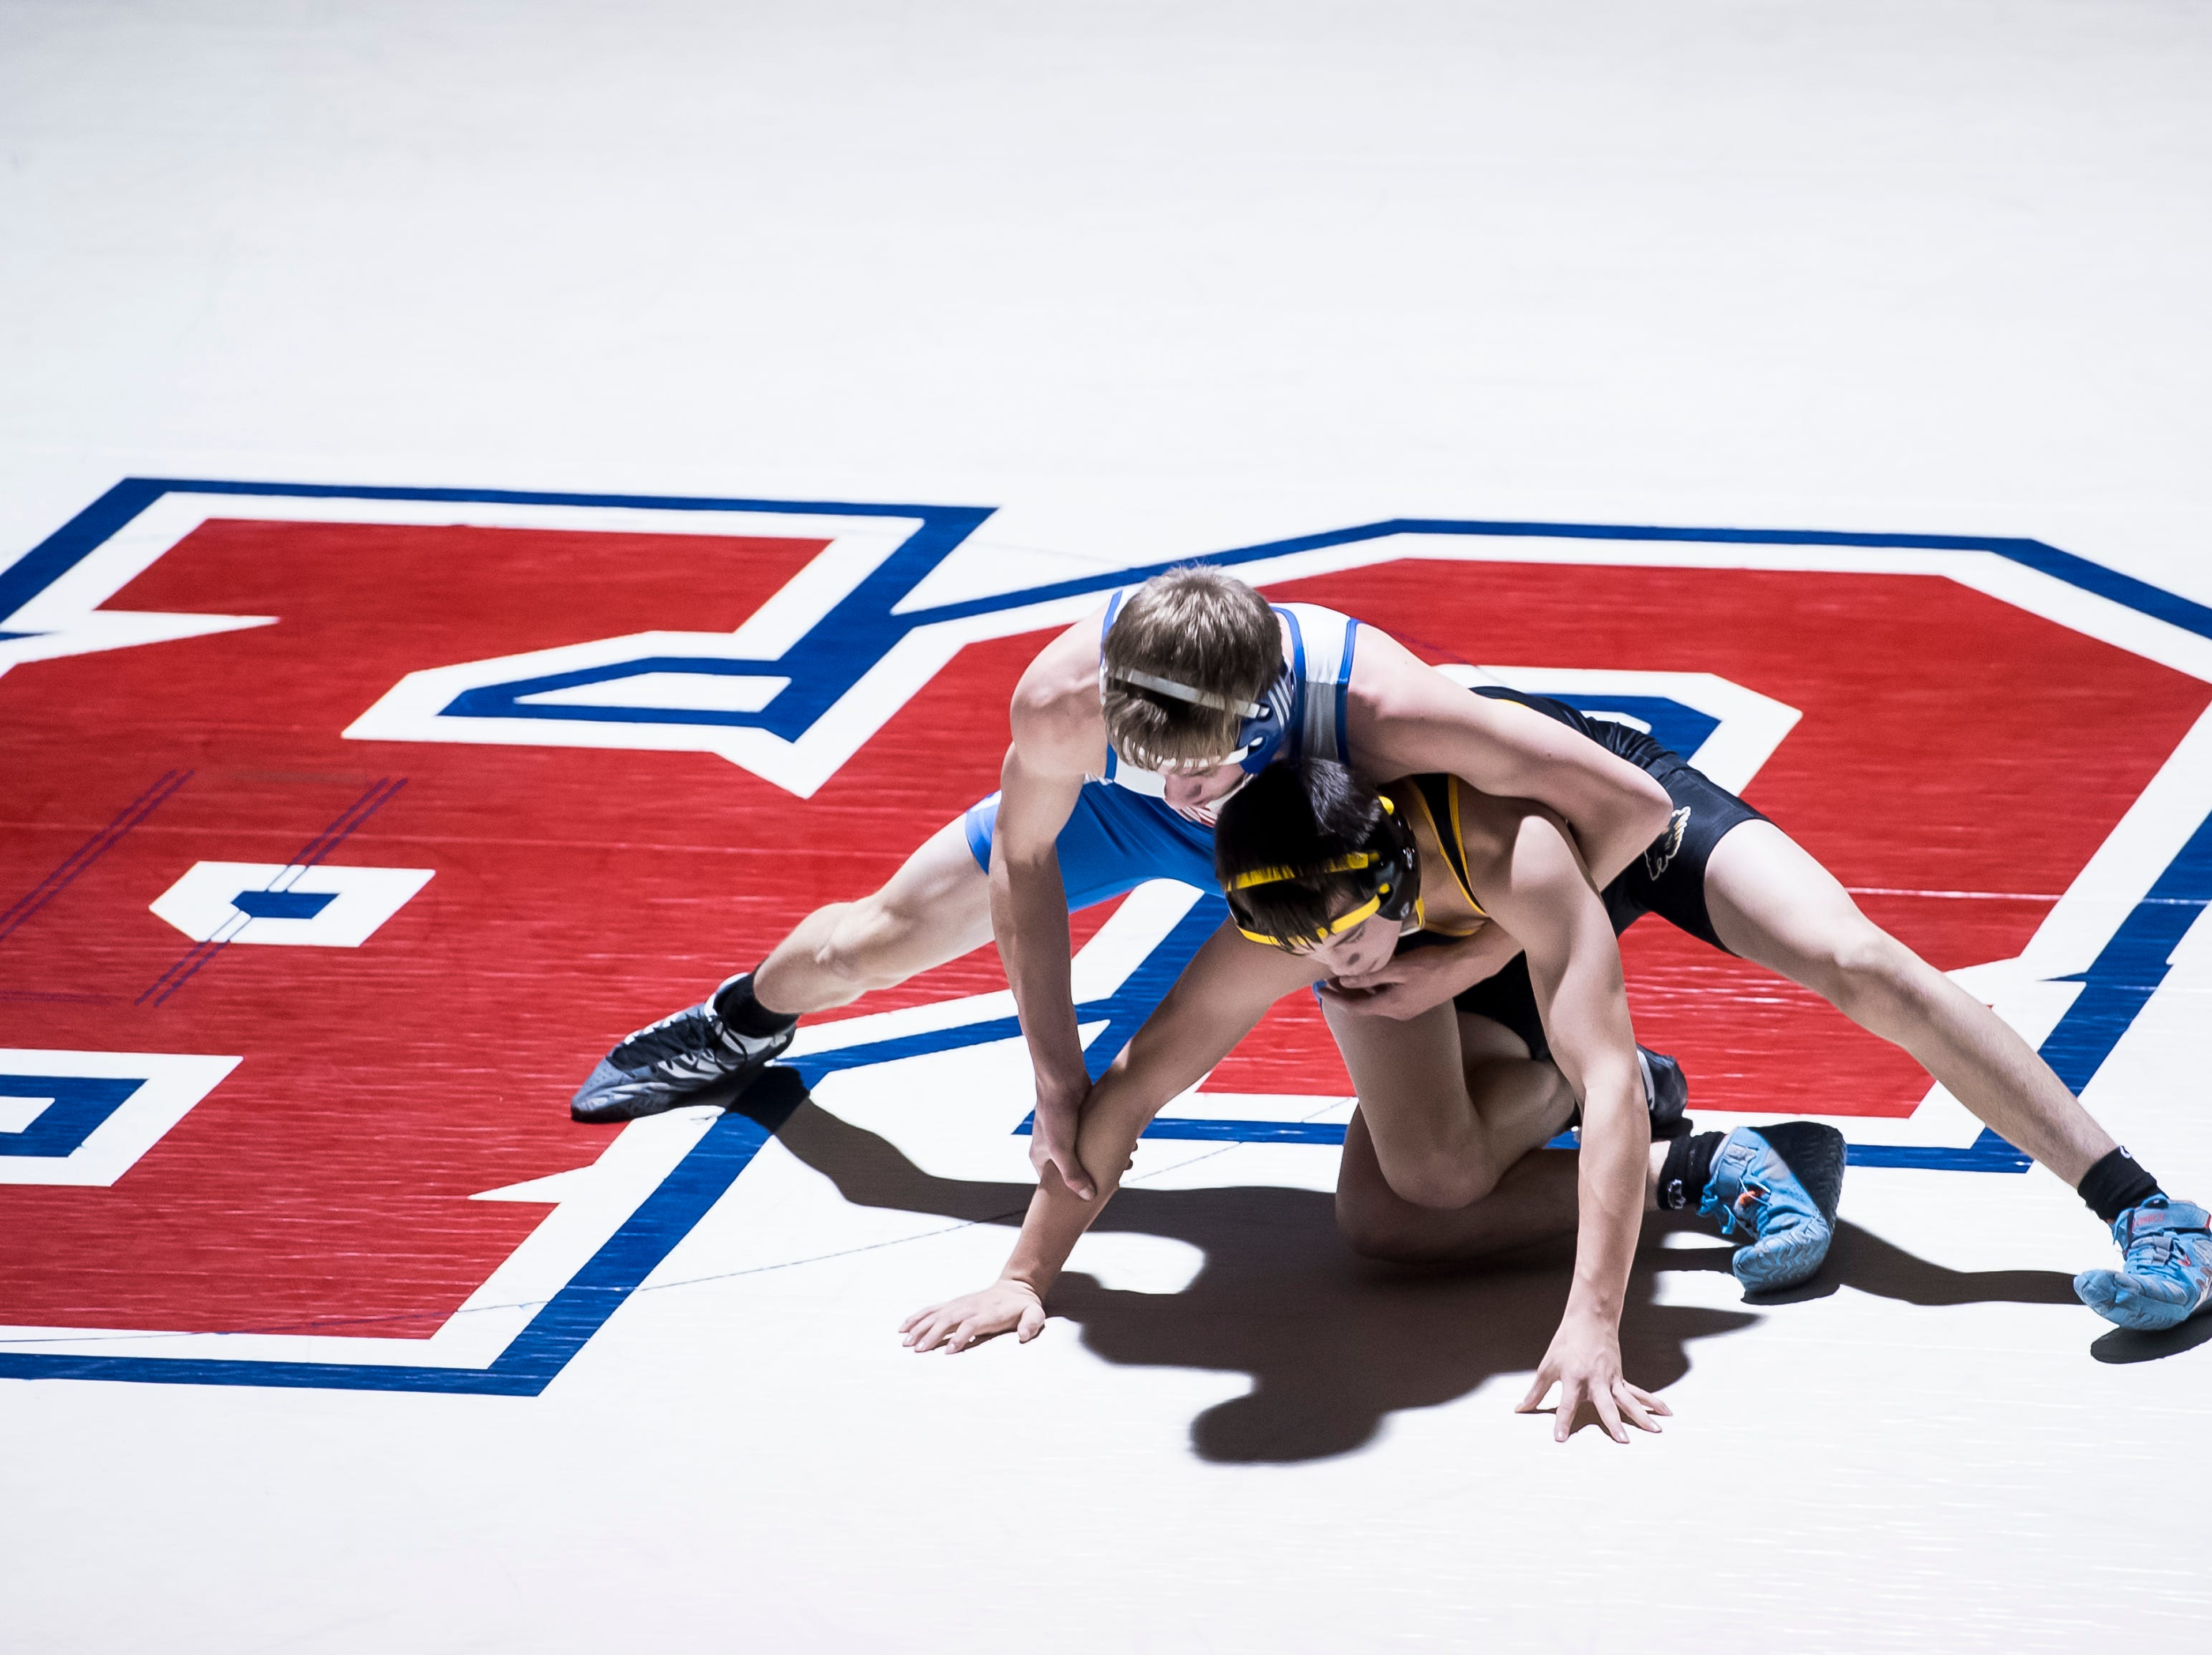 Spring Grove's William Smyser, top, wrestles Red Lion's Christian Dennison in the 132-pound bout at Spring Grove High School on Wednesday, December 12, 2018. The Rockets won the dual 68-9.